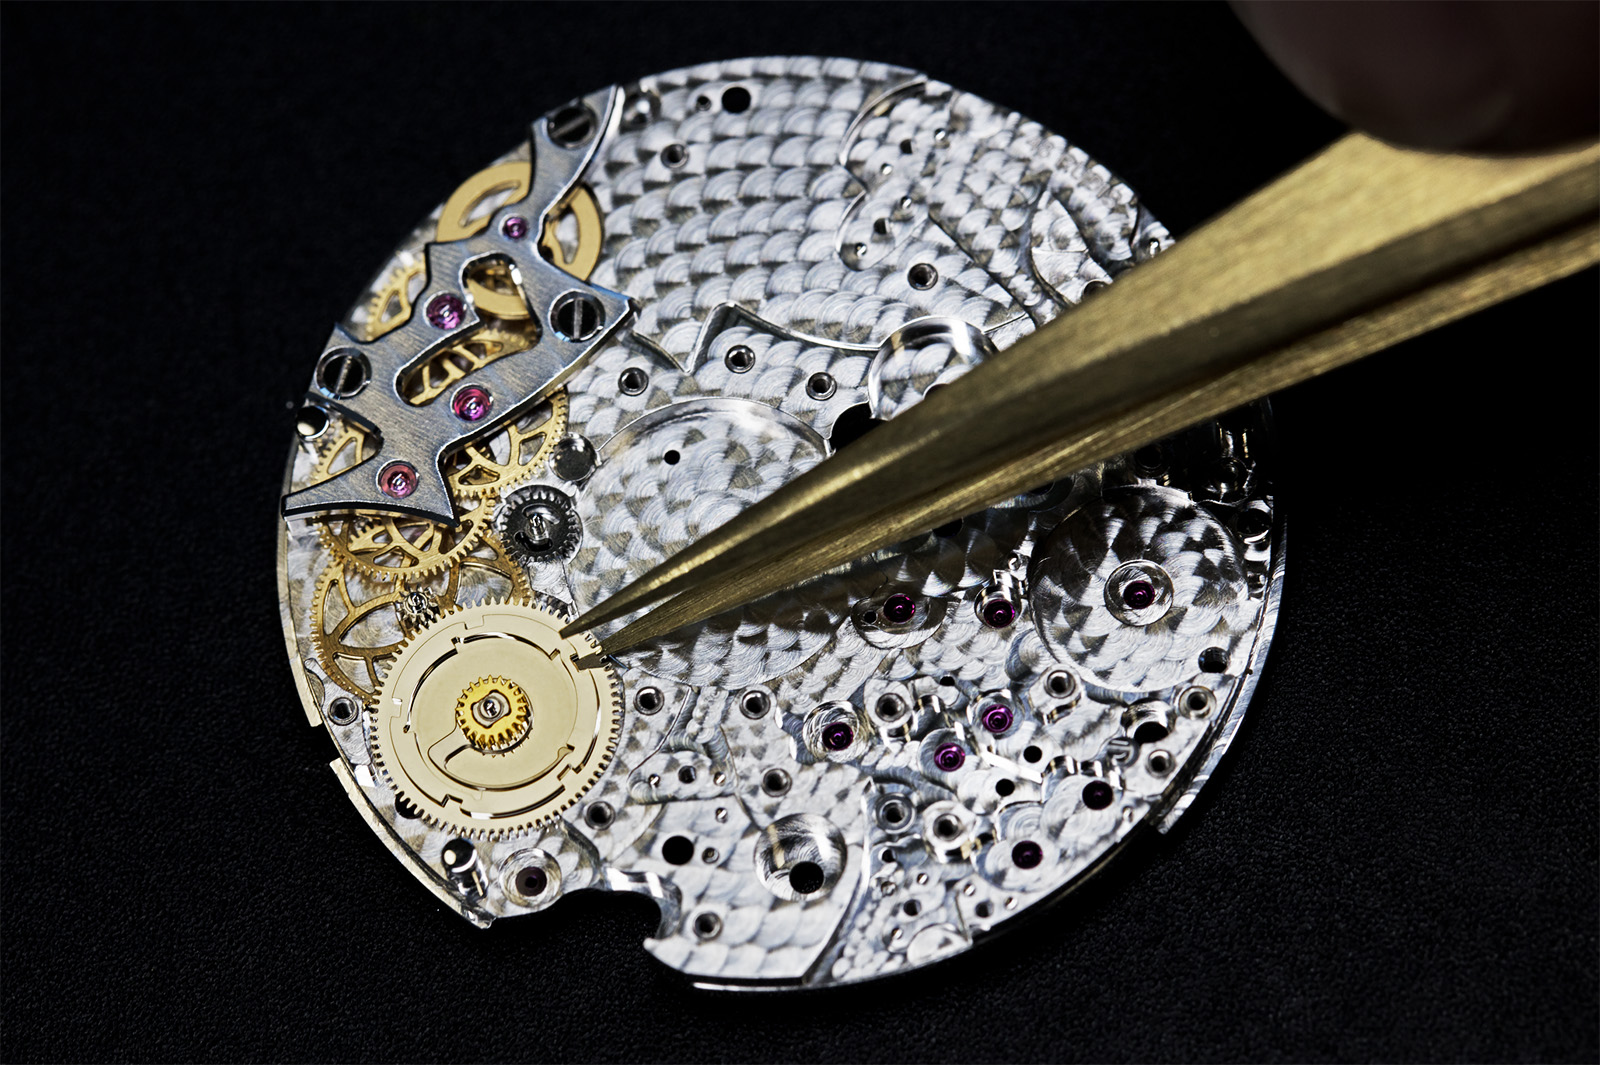 The gear train for the on-demand operation of the Pont des Amoureux 2019 features a column-wheel like all-or-nothing wheel and a lever and spring (not pictured) which controls the motion of the two hands. The regulator wheel is shown at the top of the gear train in gold. Image by Johann Sauty.